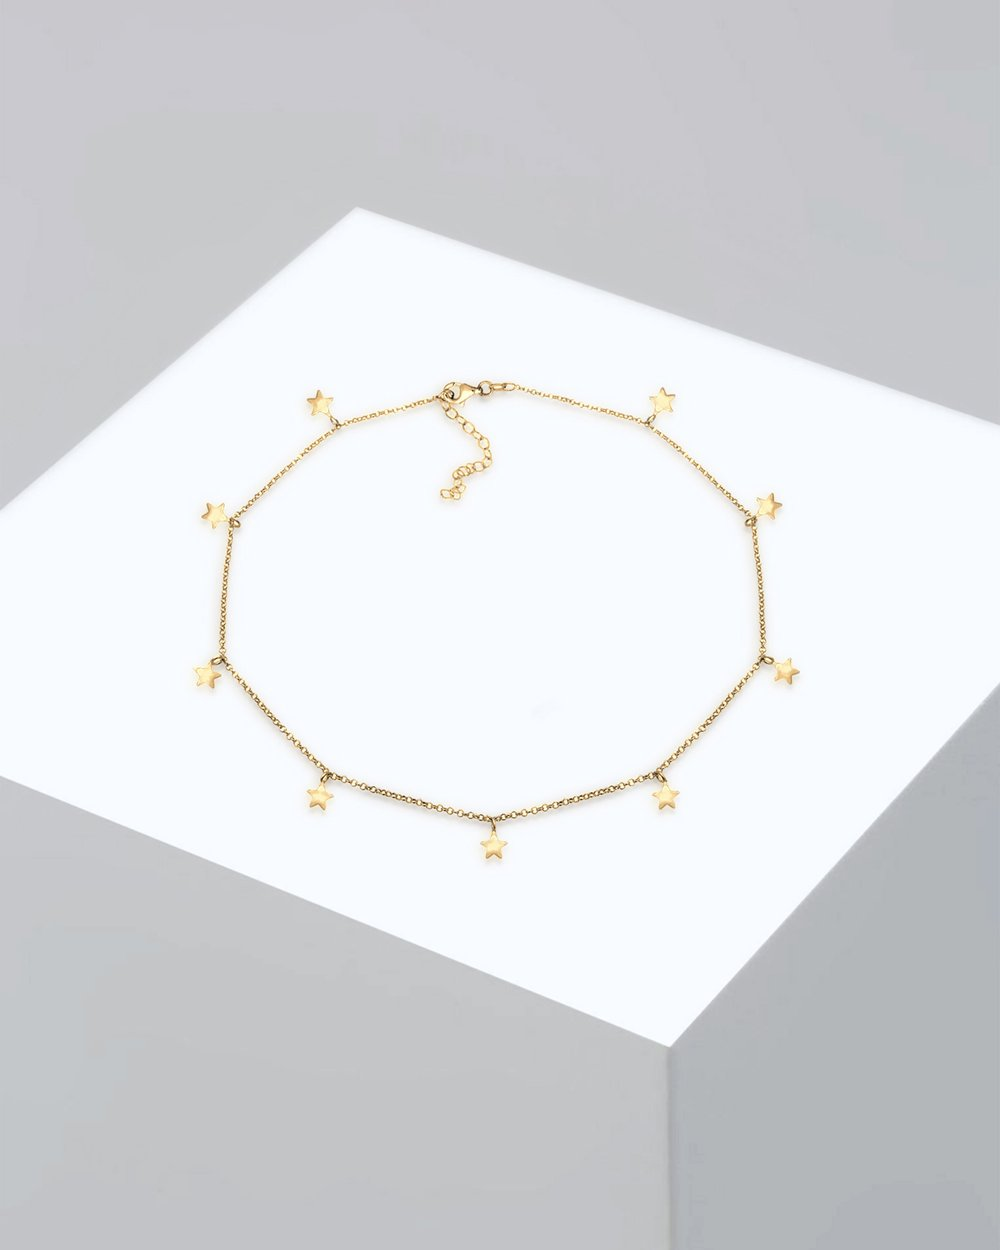 7614b30fc85c32 Necklace Women Choker Chain Star Astro Look Basic 925 Sterling Silver Gold  Plated by Elli Jewelry Online | THE ICONIC | Australia